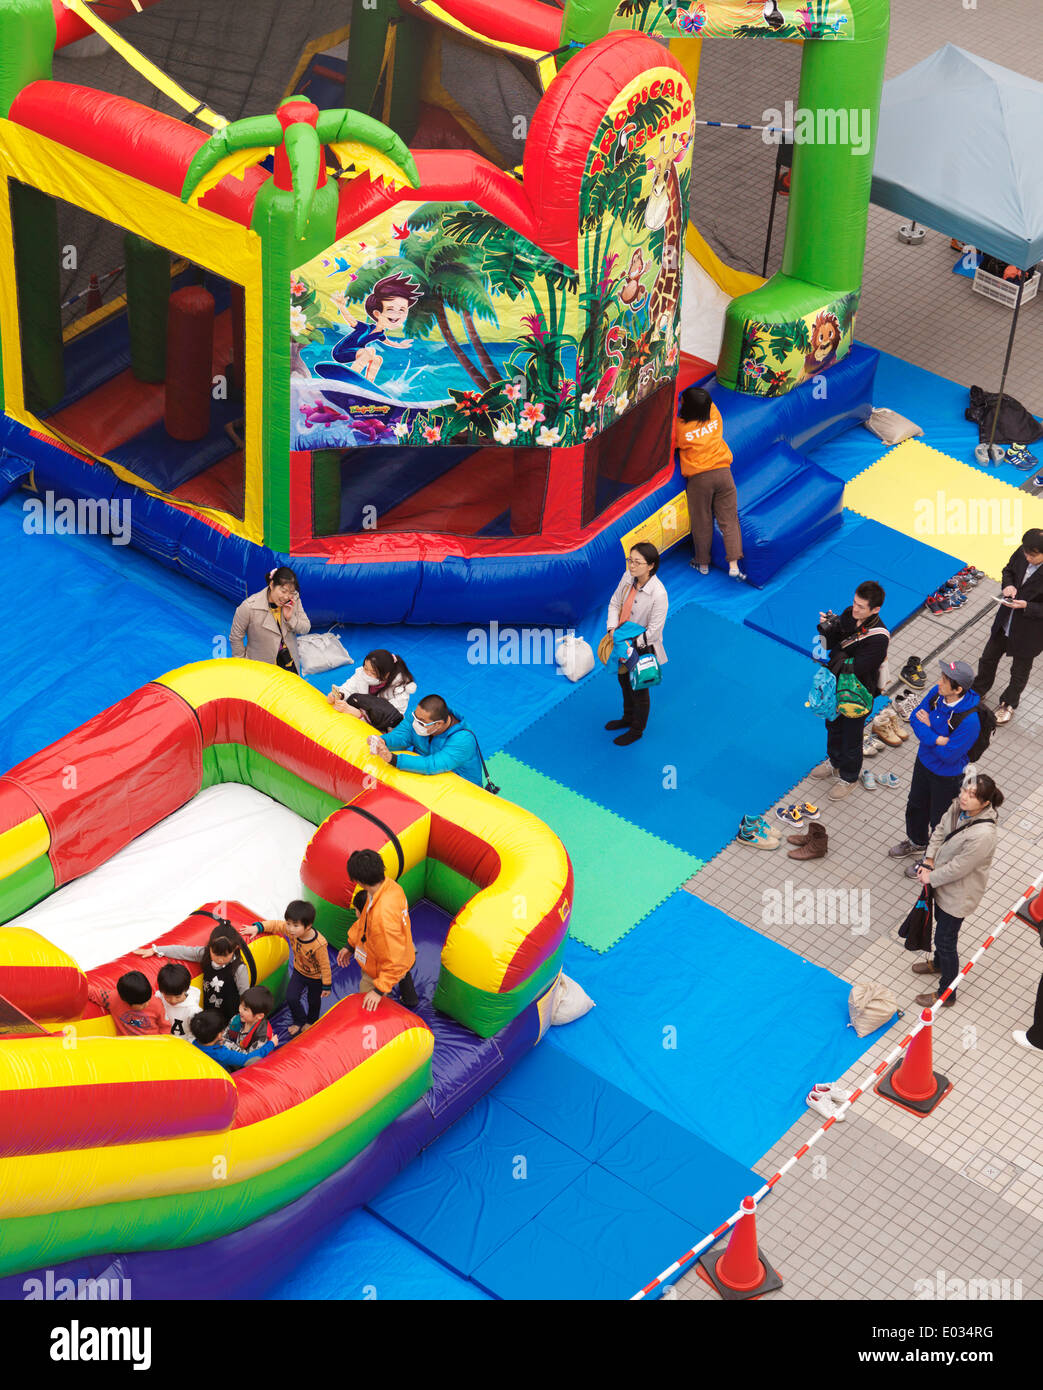 Children playground with inflatable rides at Venus Fort, Odaiba, Tokyo, Japan - Stock Image